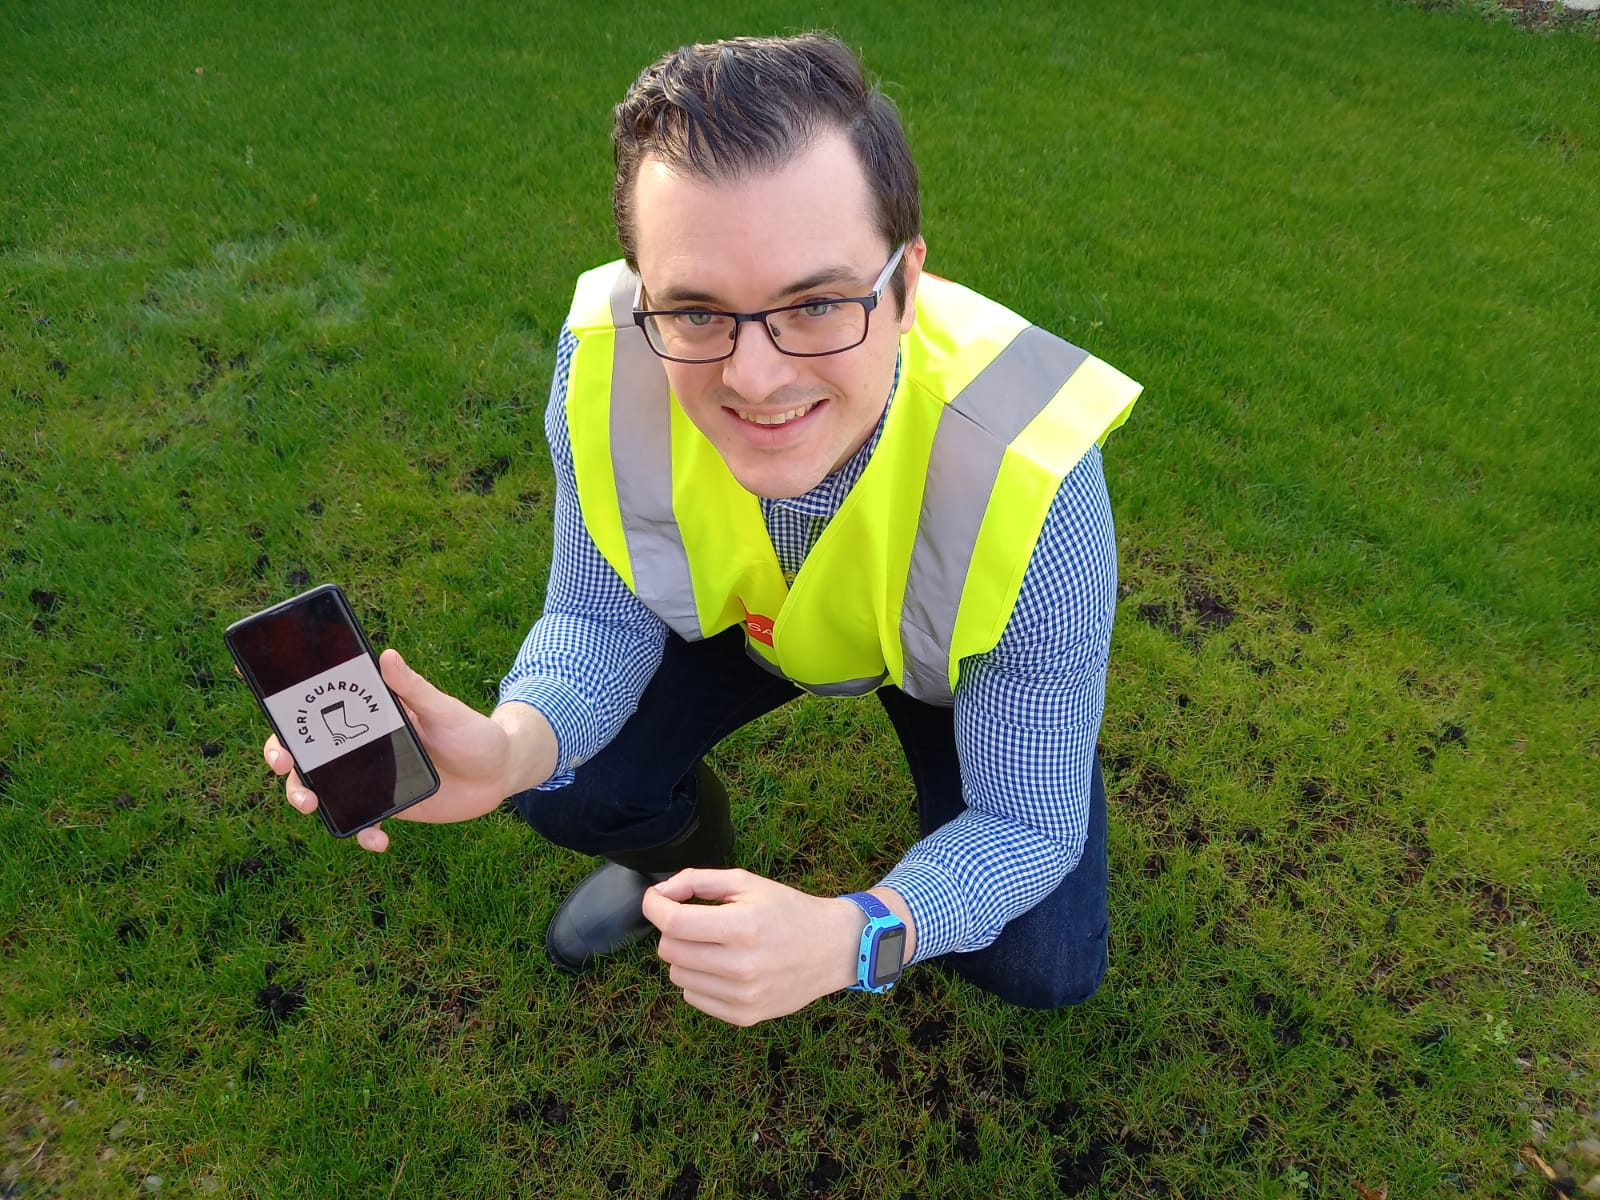 New Frontiers Awards 2021 - James Power, Founder of Agri Guardian pictured above is one to watch